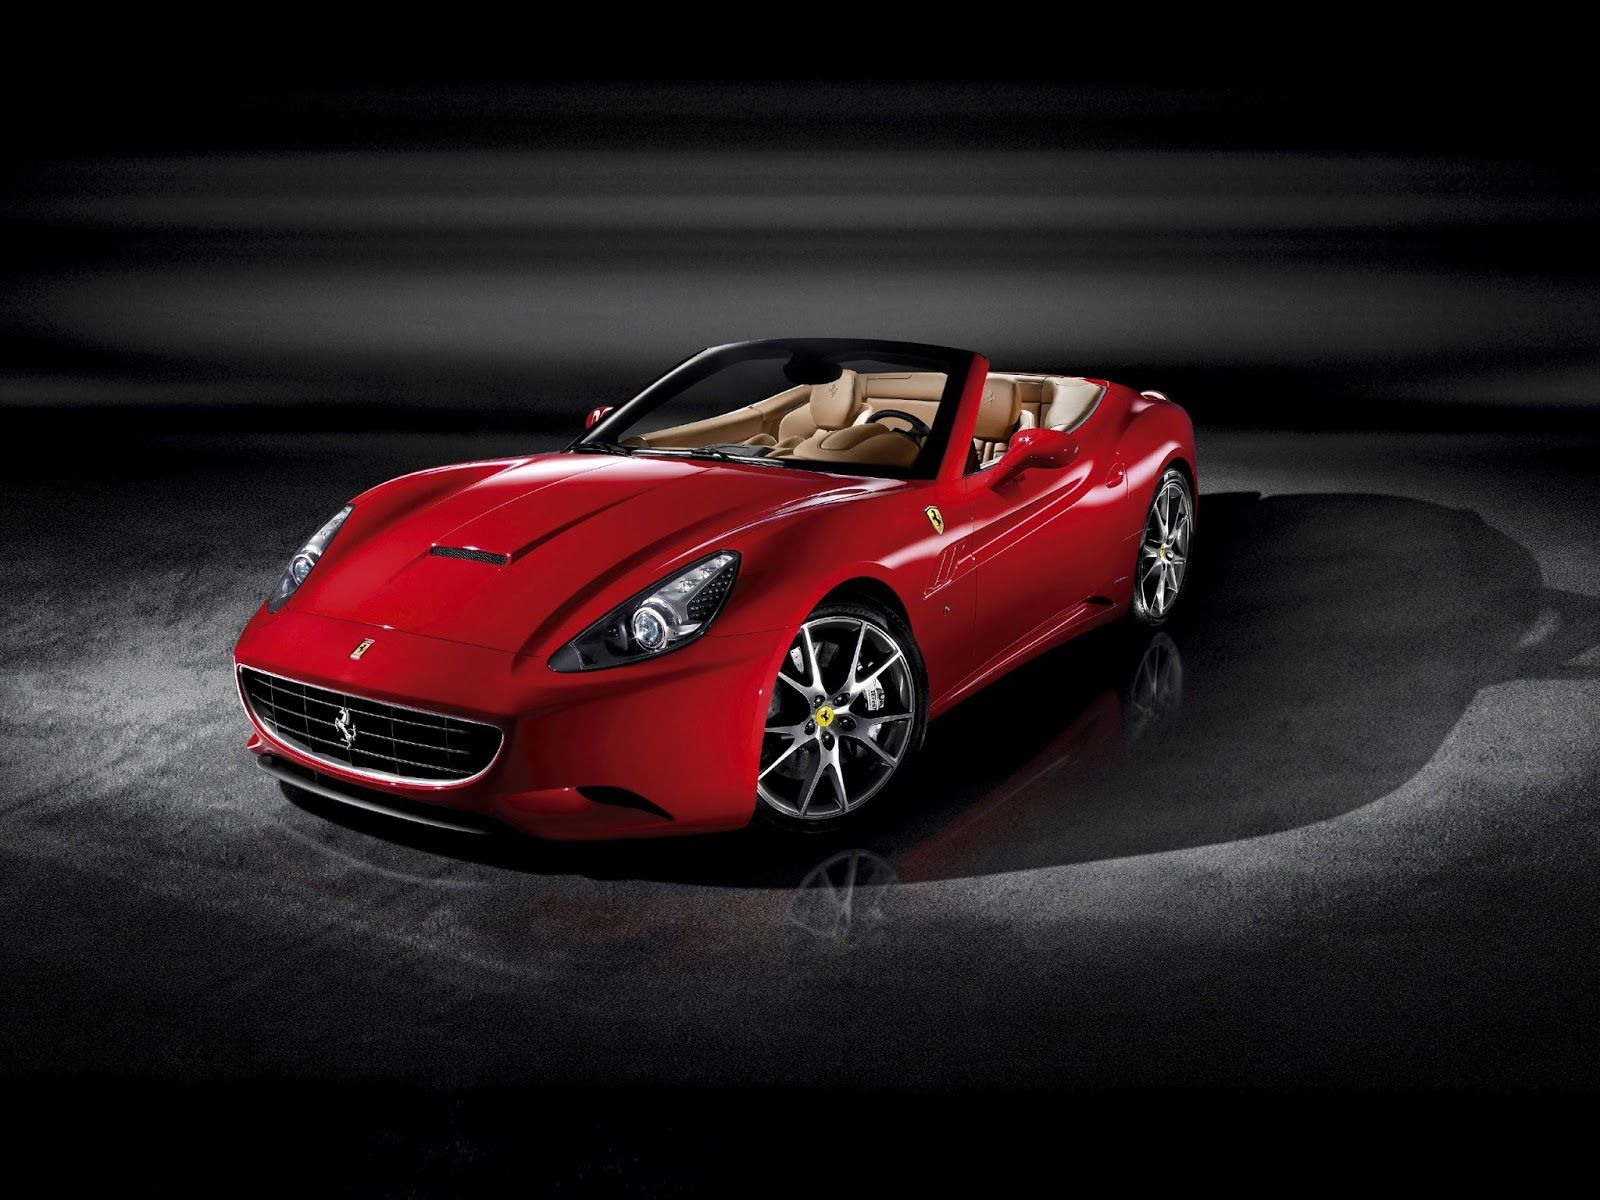 2014 Ferrari Full HD Wallpaper is hd wallpaper for desktop